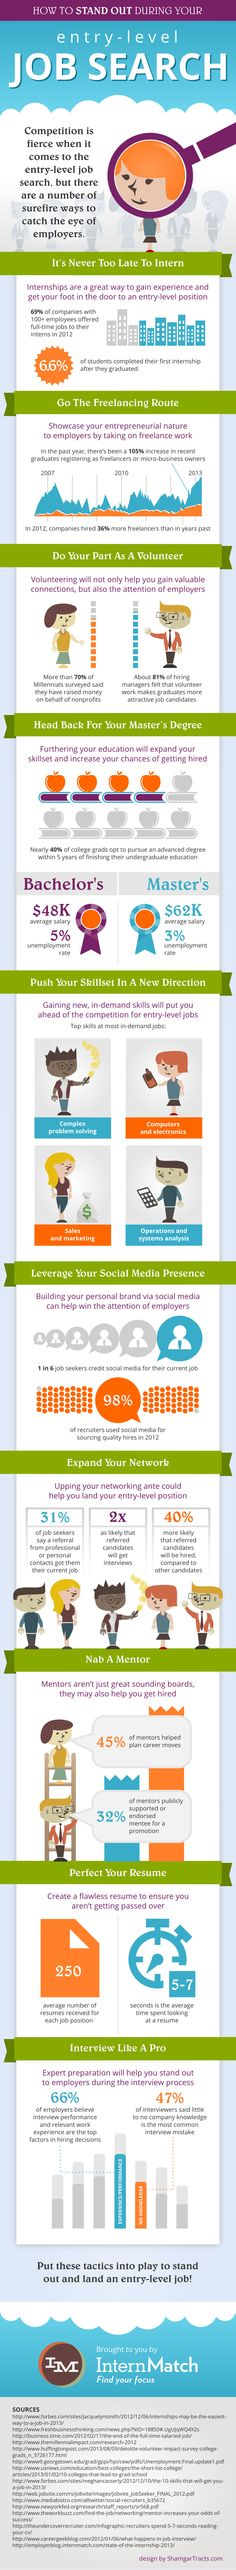 How to Be Spotted During Your Entry-Level Job Search [INFOGRAPHIC] on http://theundercoverrecruiter.com